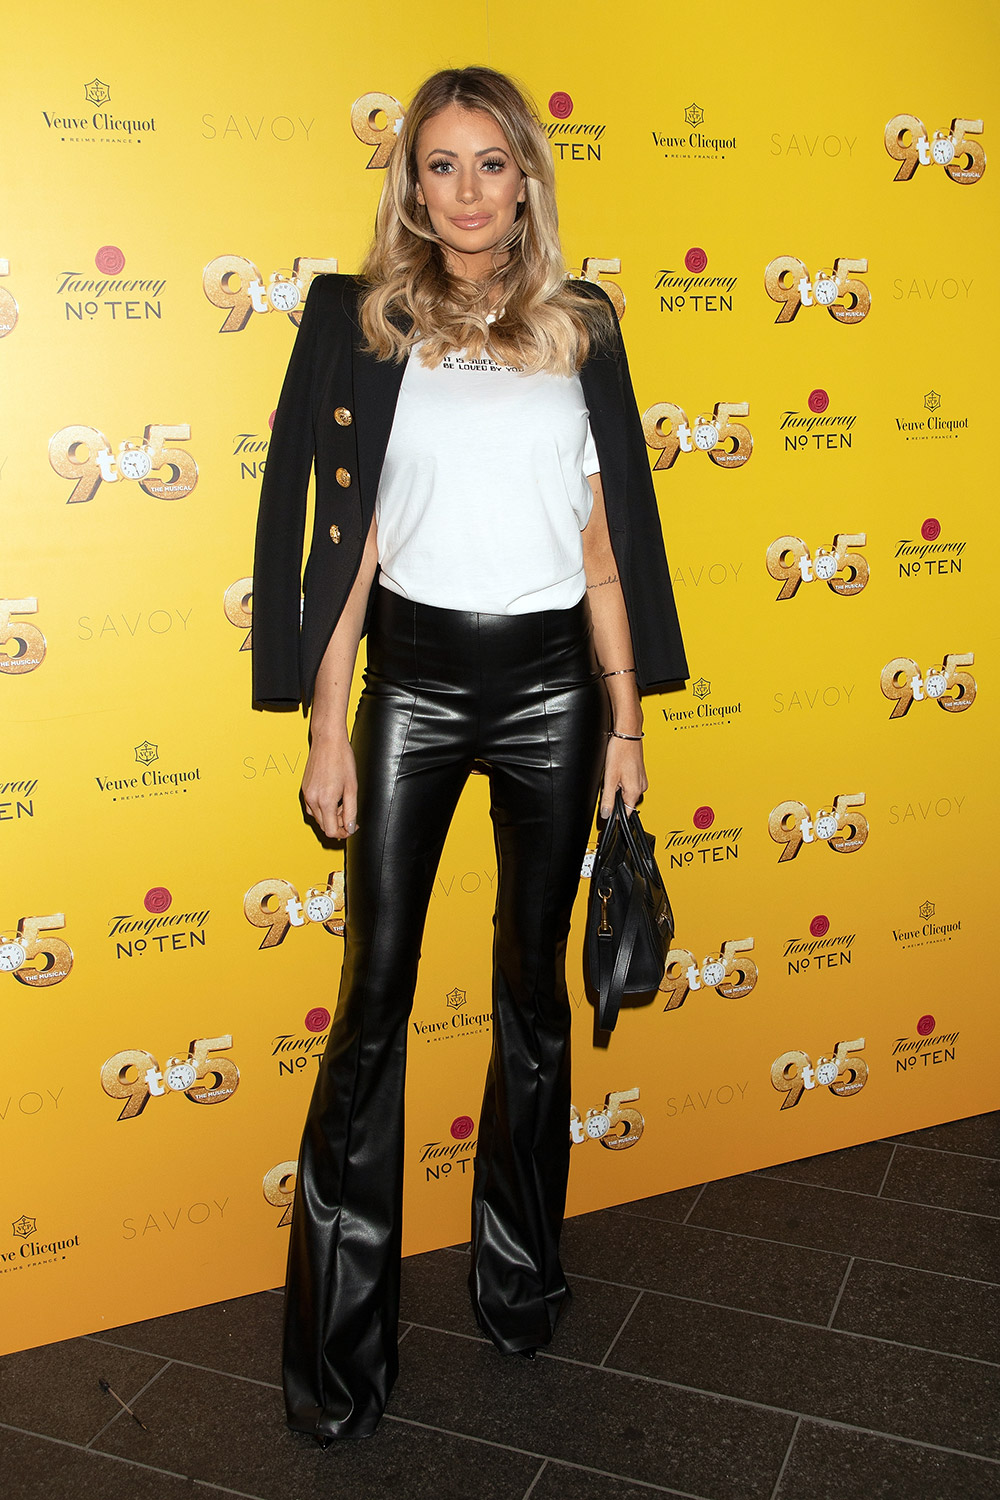 Olivia Attwood attends the '9 to 5 the Musical' Gala evening